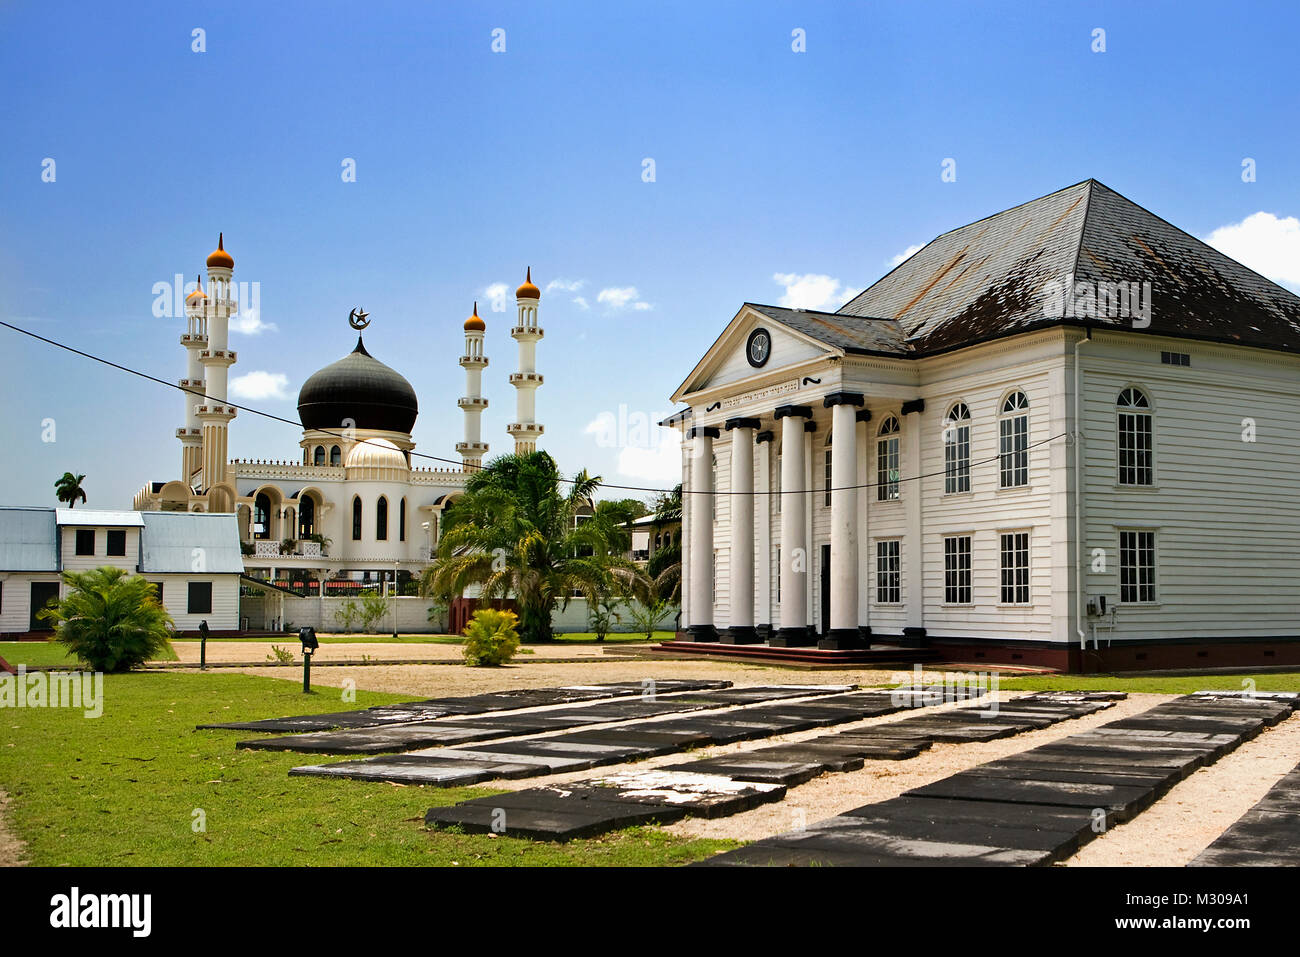 Suriname, Paramaribo, Mosque and synagogue in Keizerstraat in the historic inner city. - Stock Image